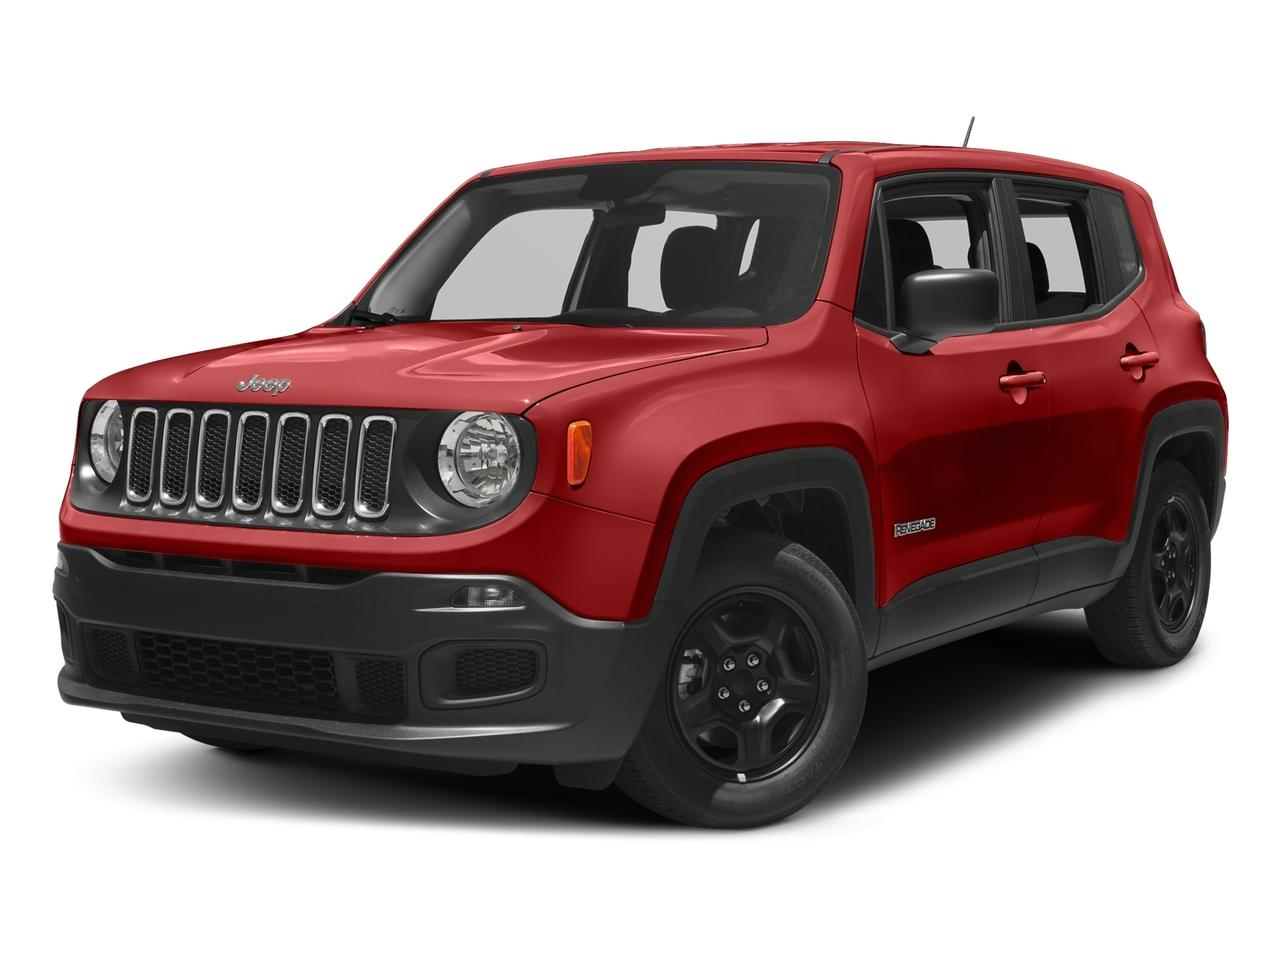 2016 Jeep Renegade Vehicle Photo in Rosenberg, TX 77471